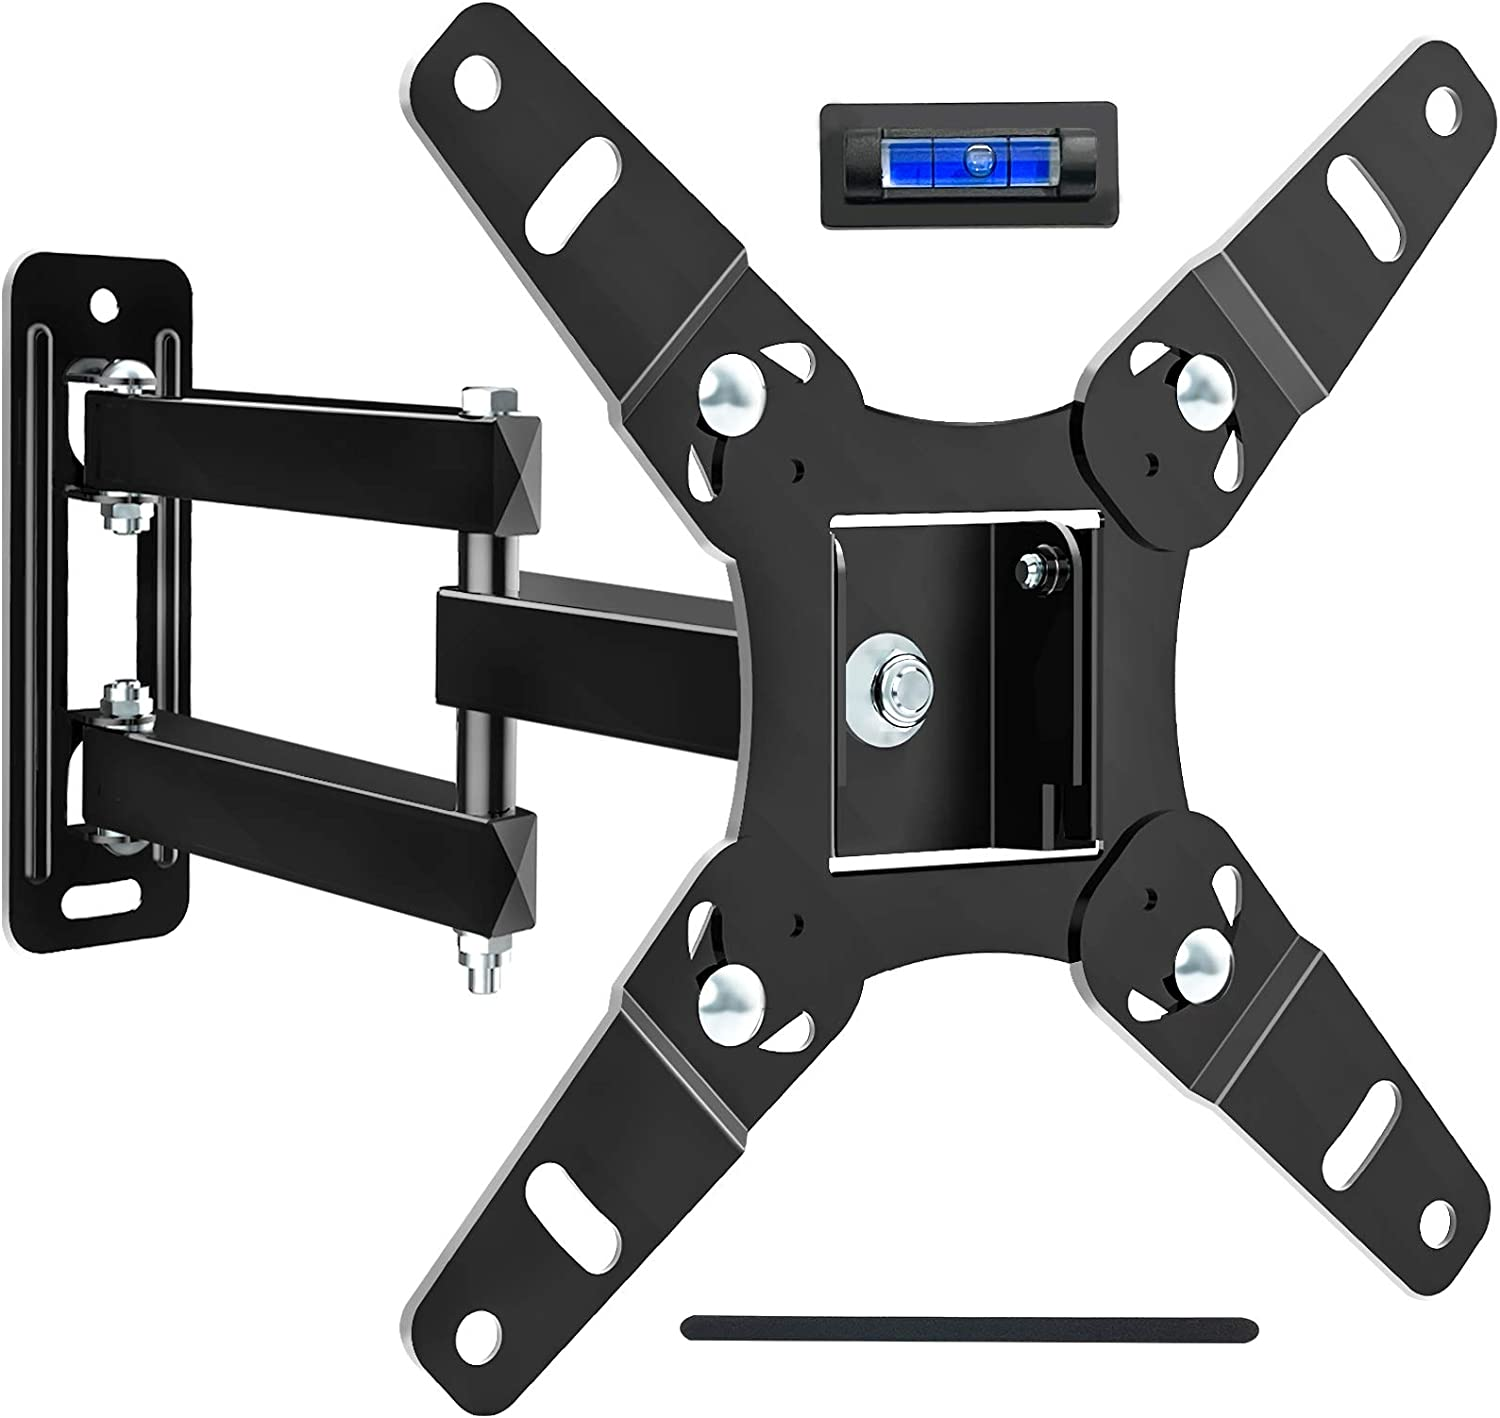 JUSTSTONE Full Motion TV Wall Mount Bracket for Most 13-45 Inch LED LCD Flat Curved Screen TVs, Articulating Arms Swivels Tilts Extension and 360° Rotation, Max VESA 200x200mm up to 55lbs